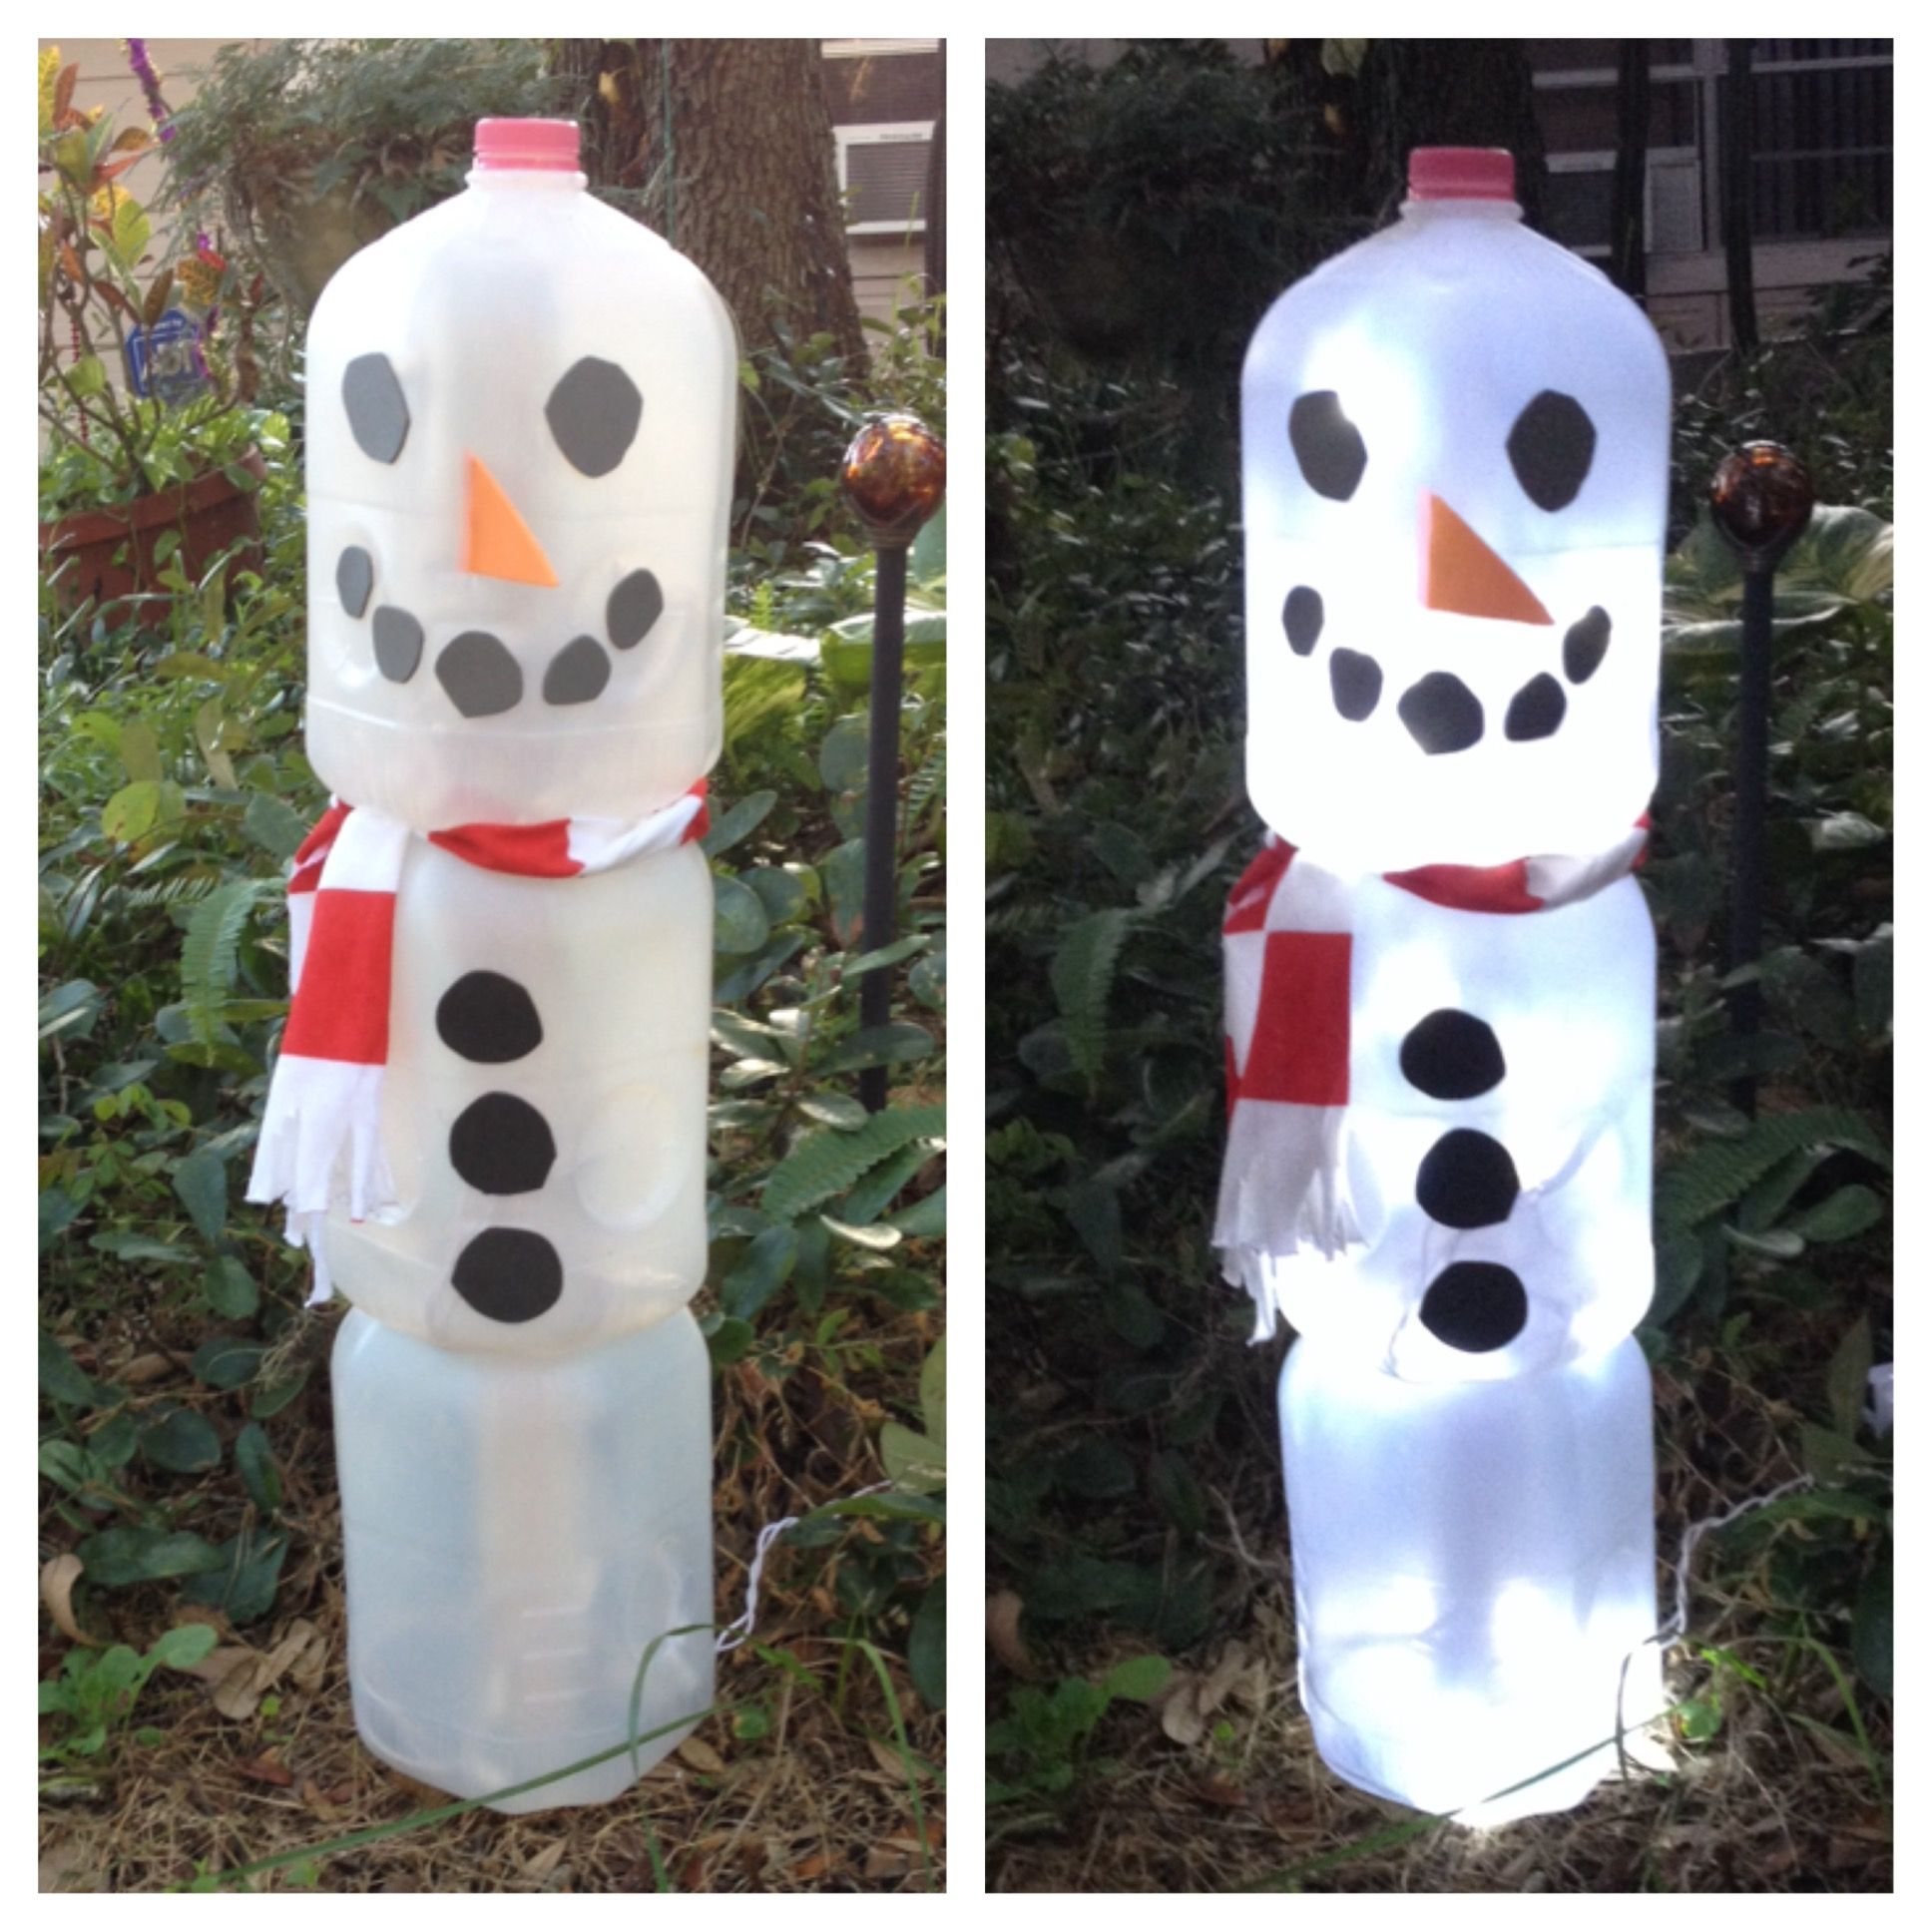 Snowman Made From Gallon Milk Jugs